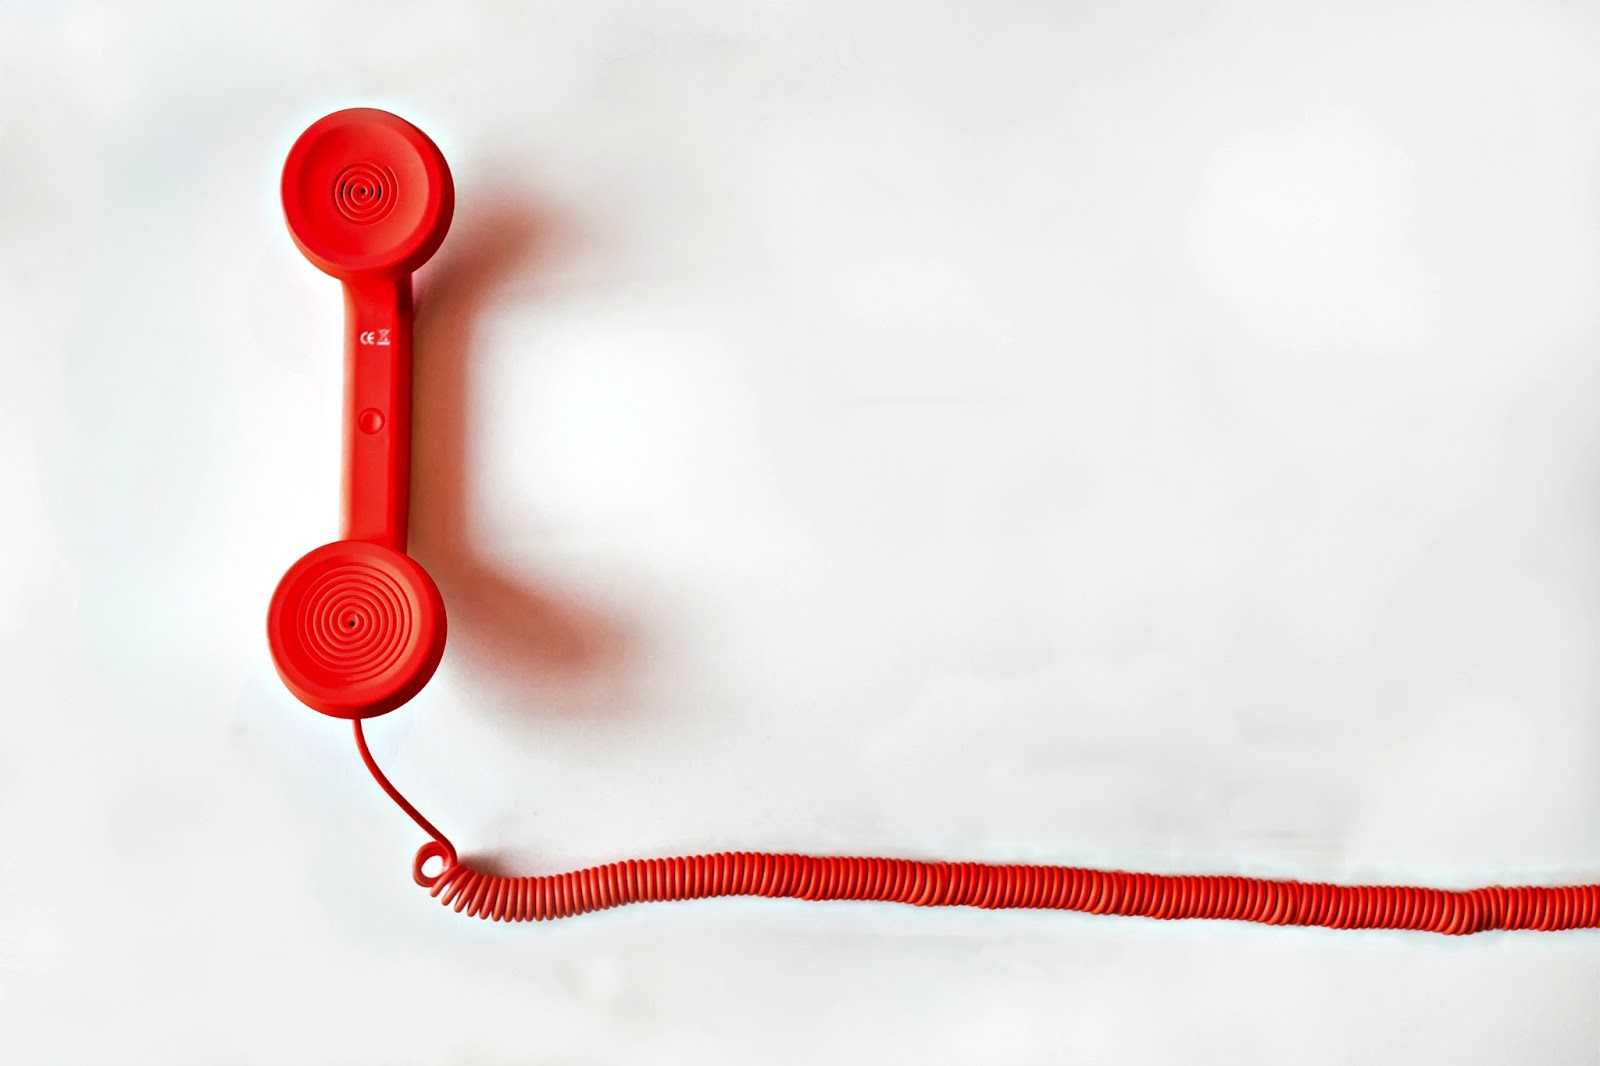 Red telephone handset and cord